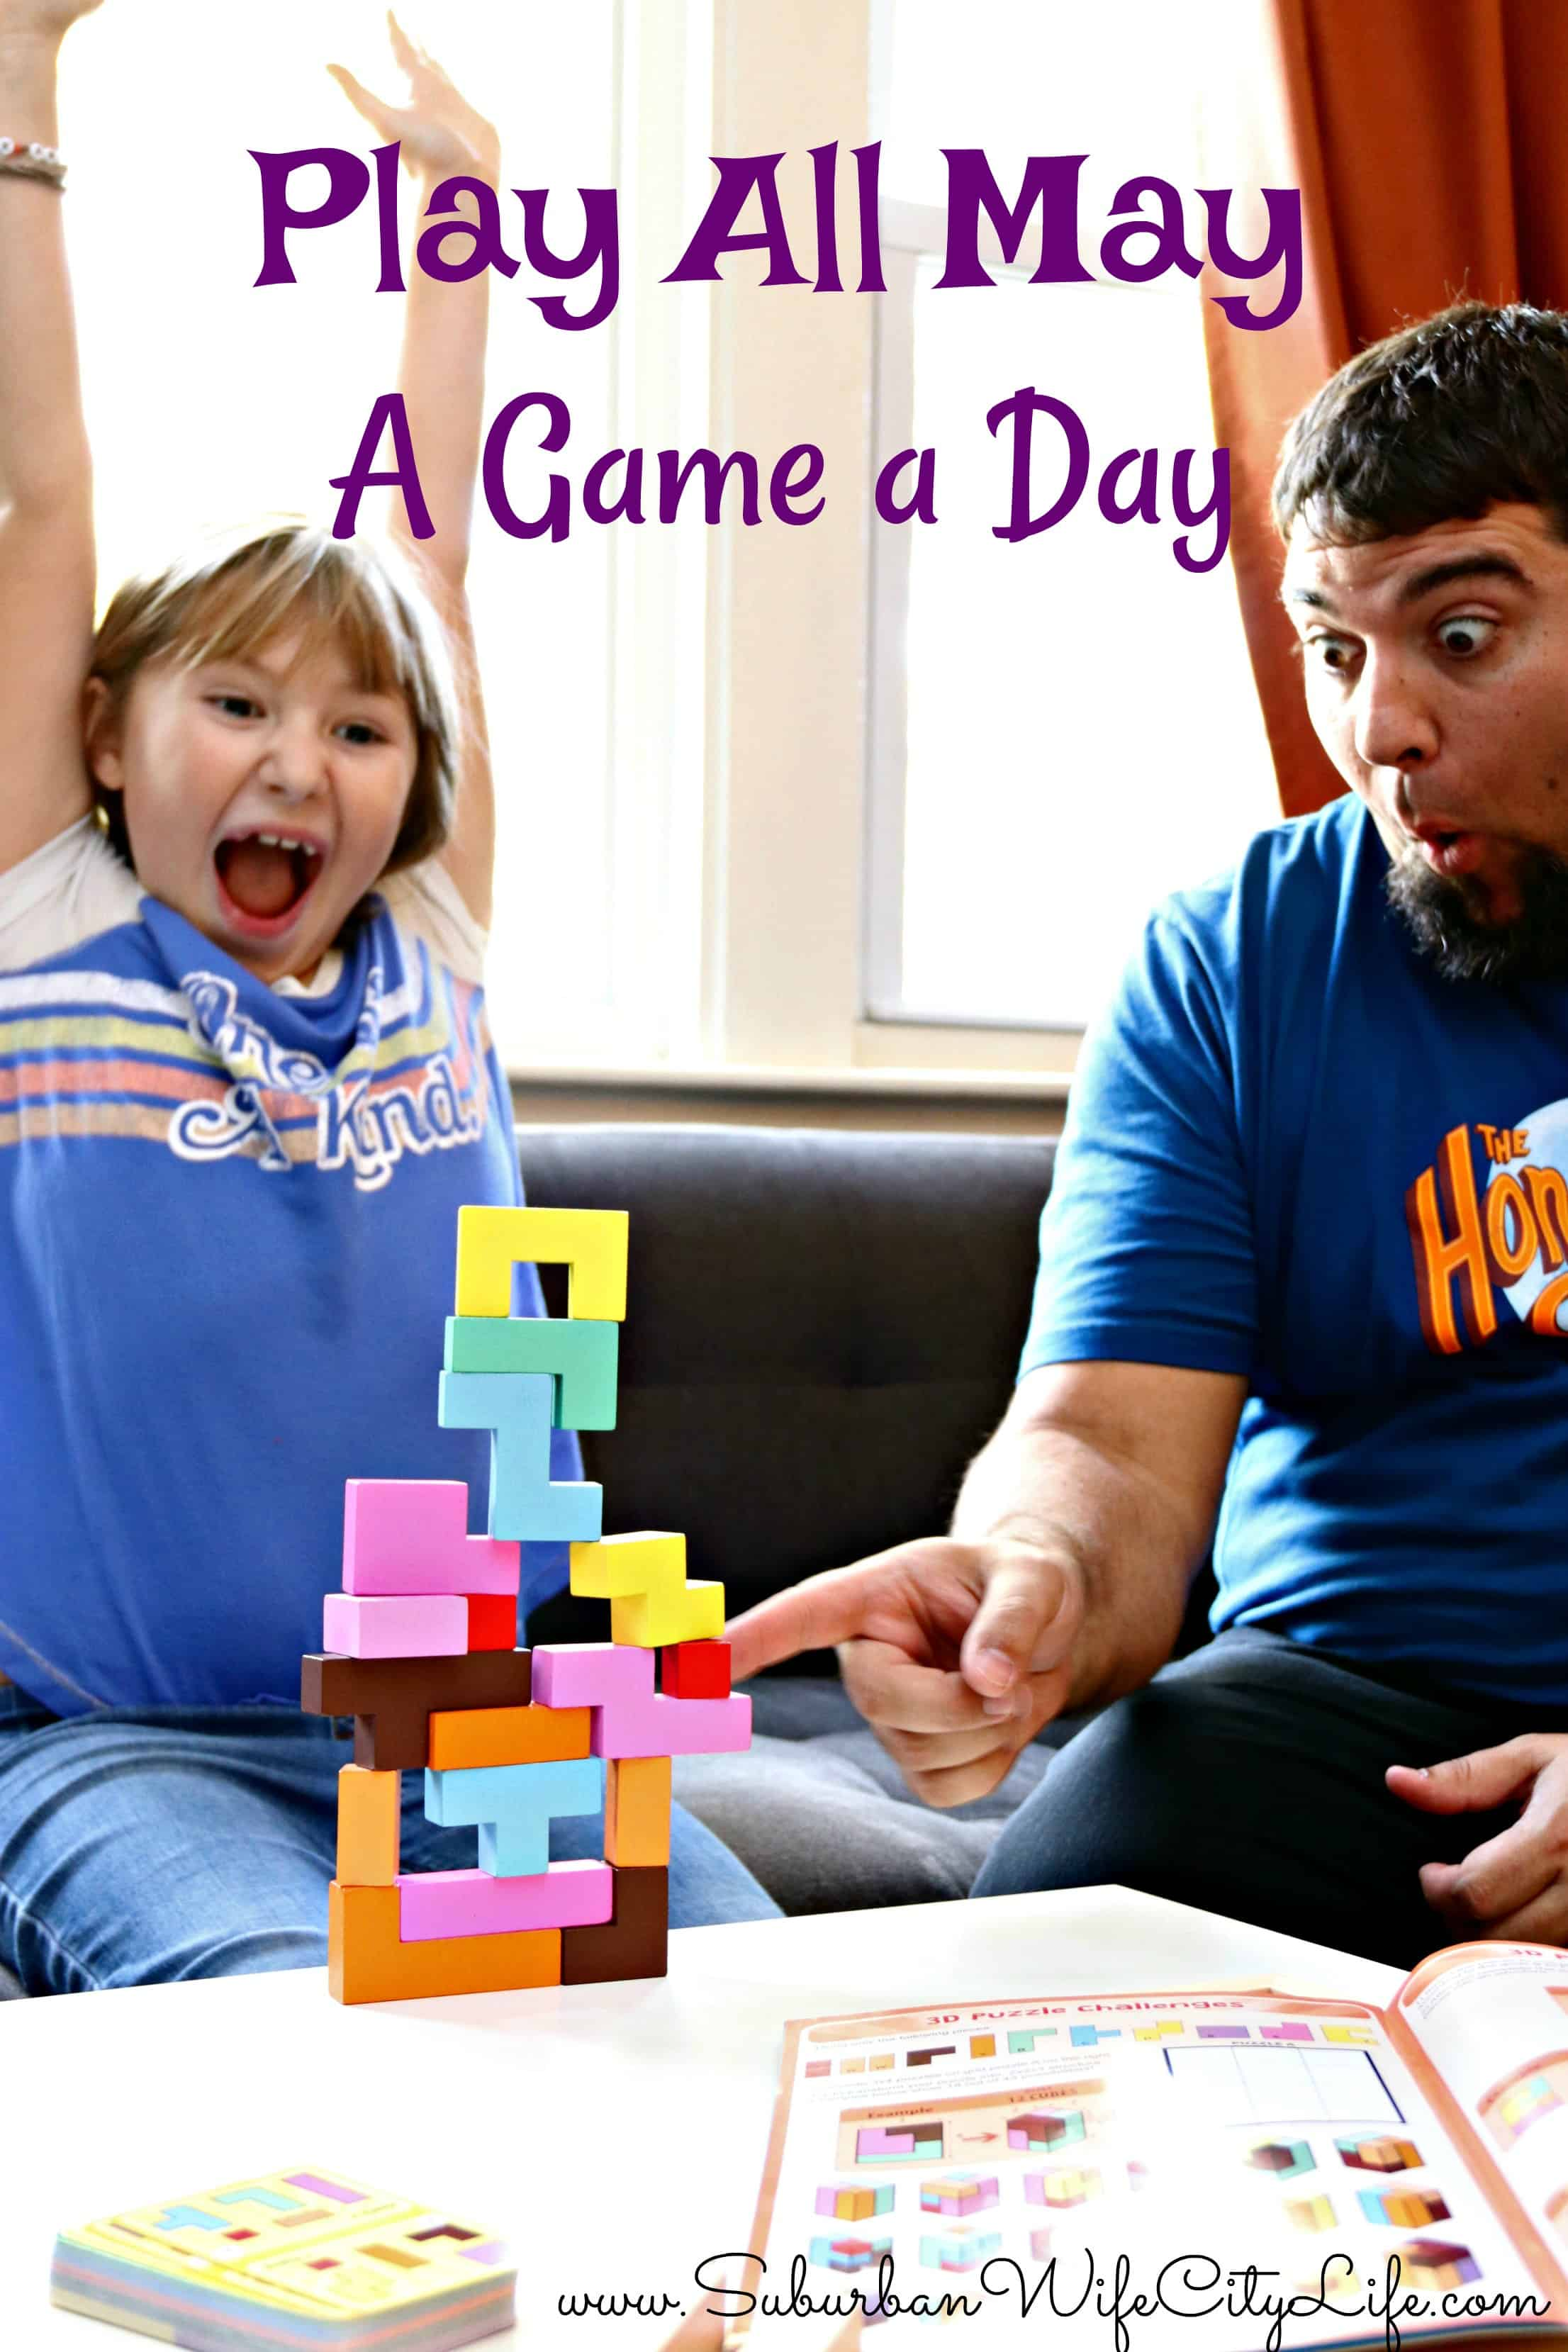 Play All May – A Game a Day